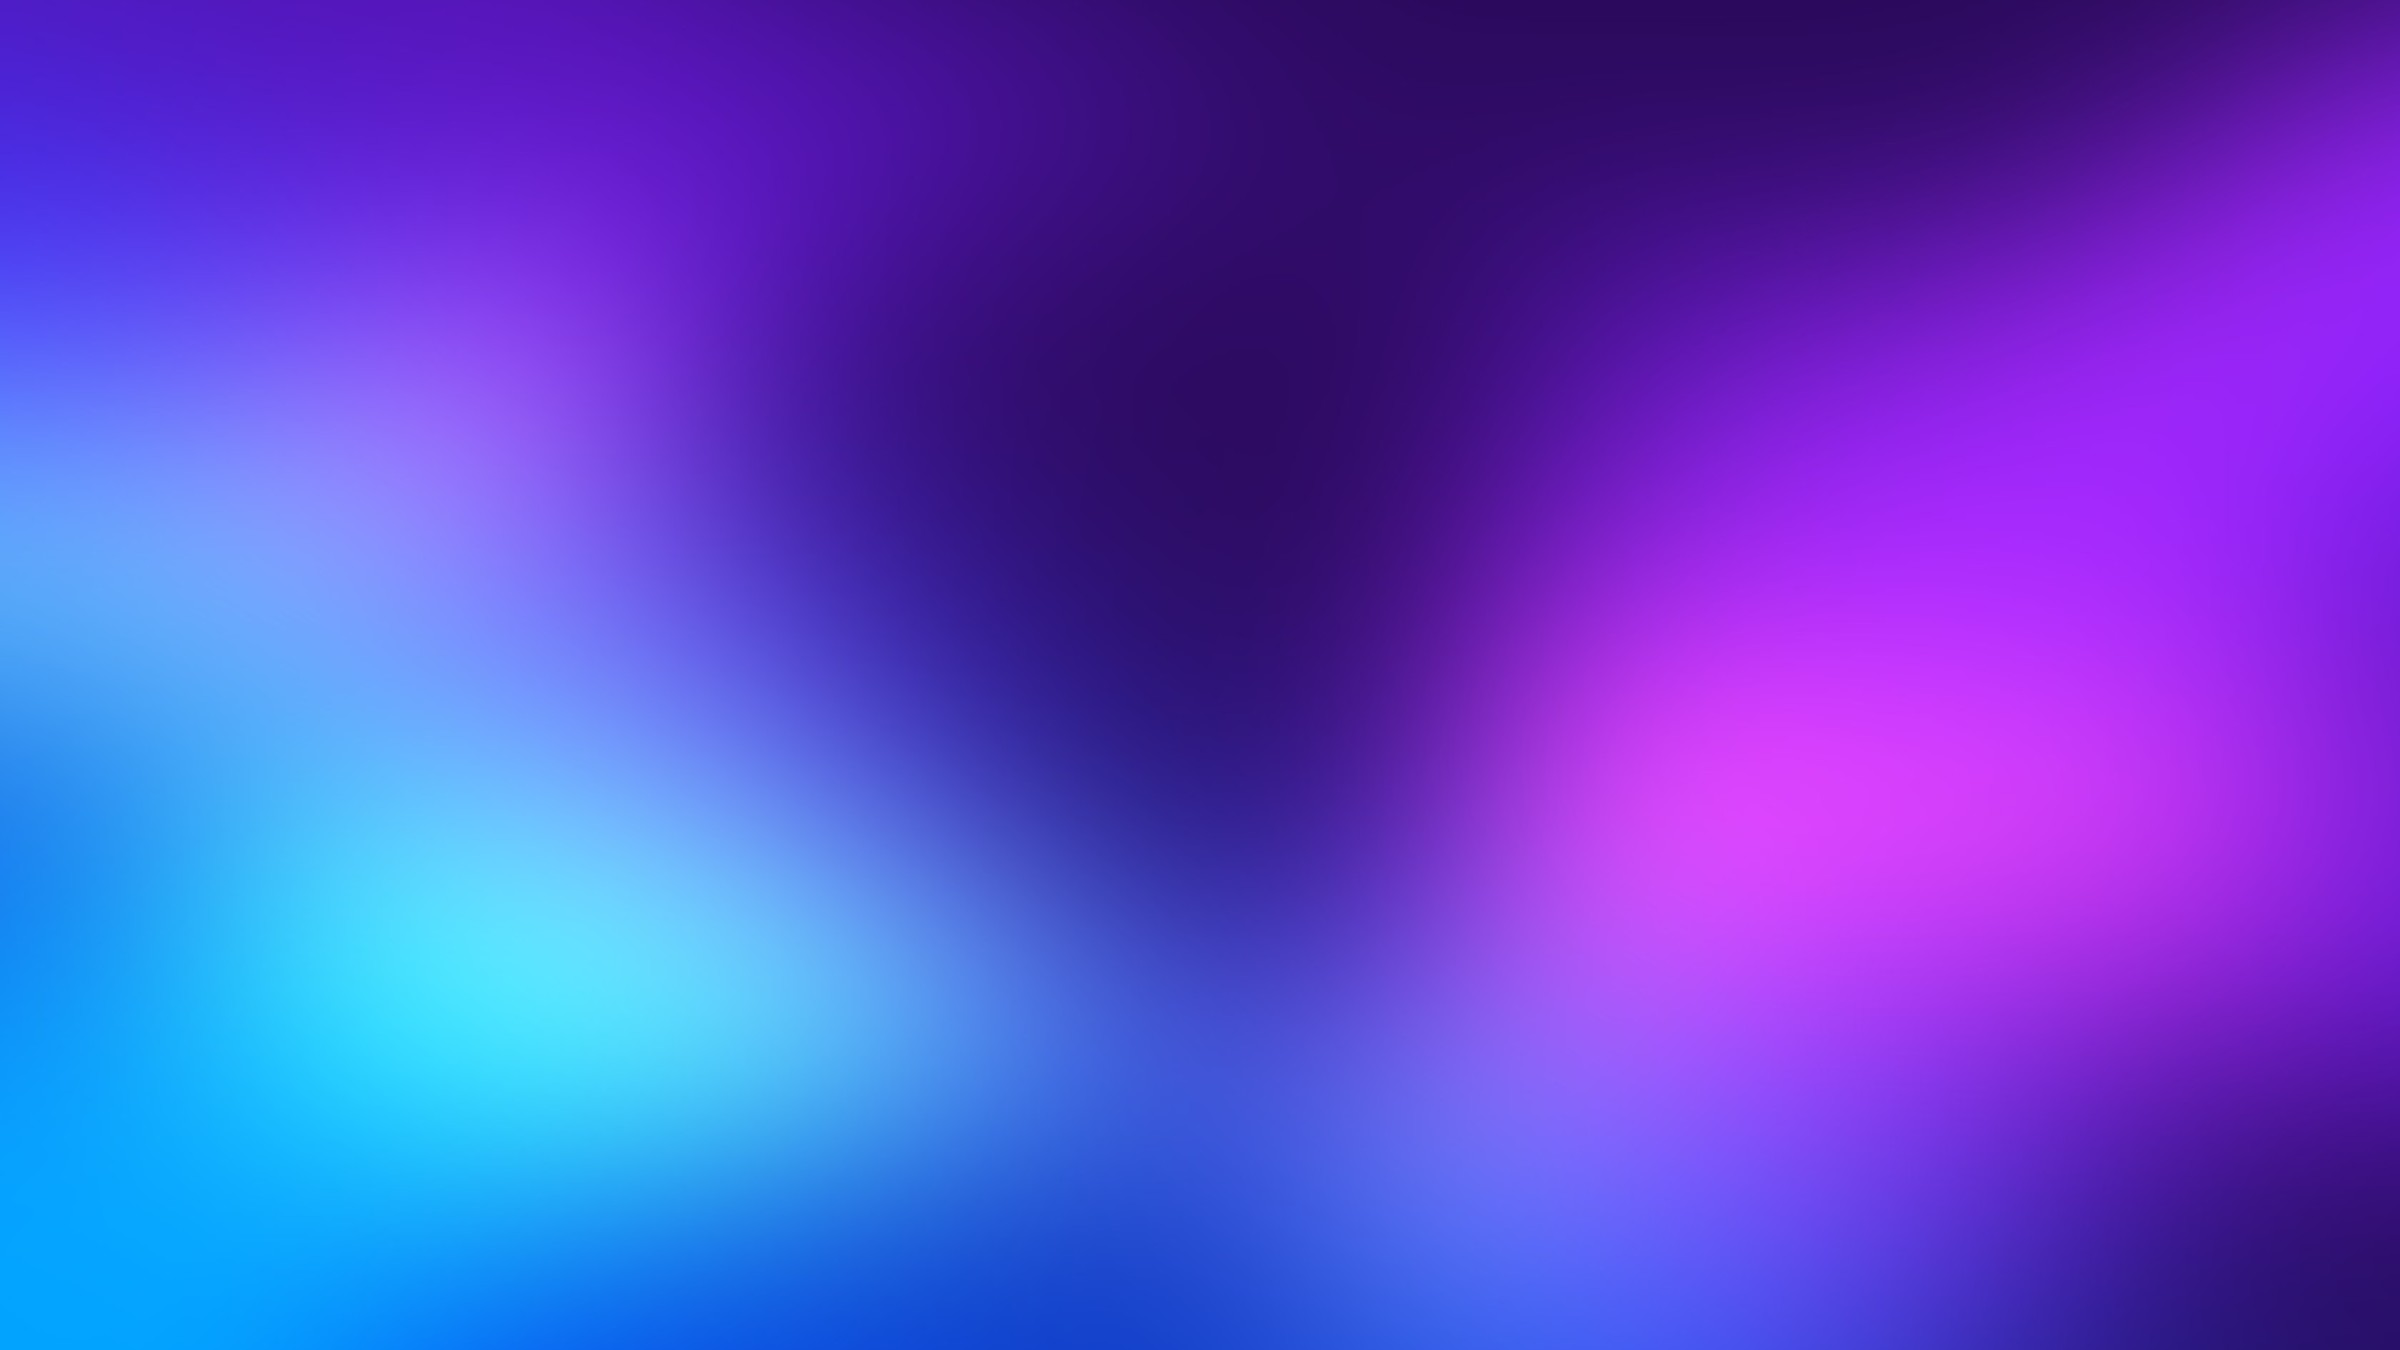 Minimalistic Candy Blurred Colors Smooth Wallpaper HD Wallpapers Download Free Images Wallpaper [1000image.com]